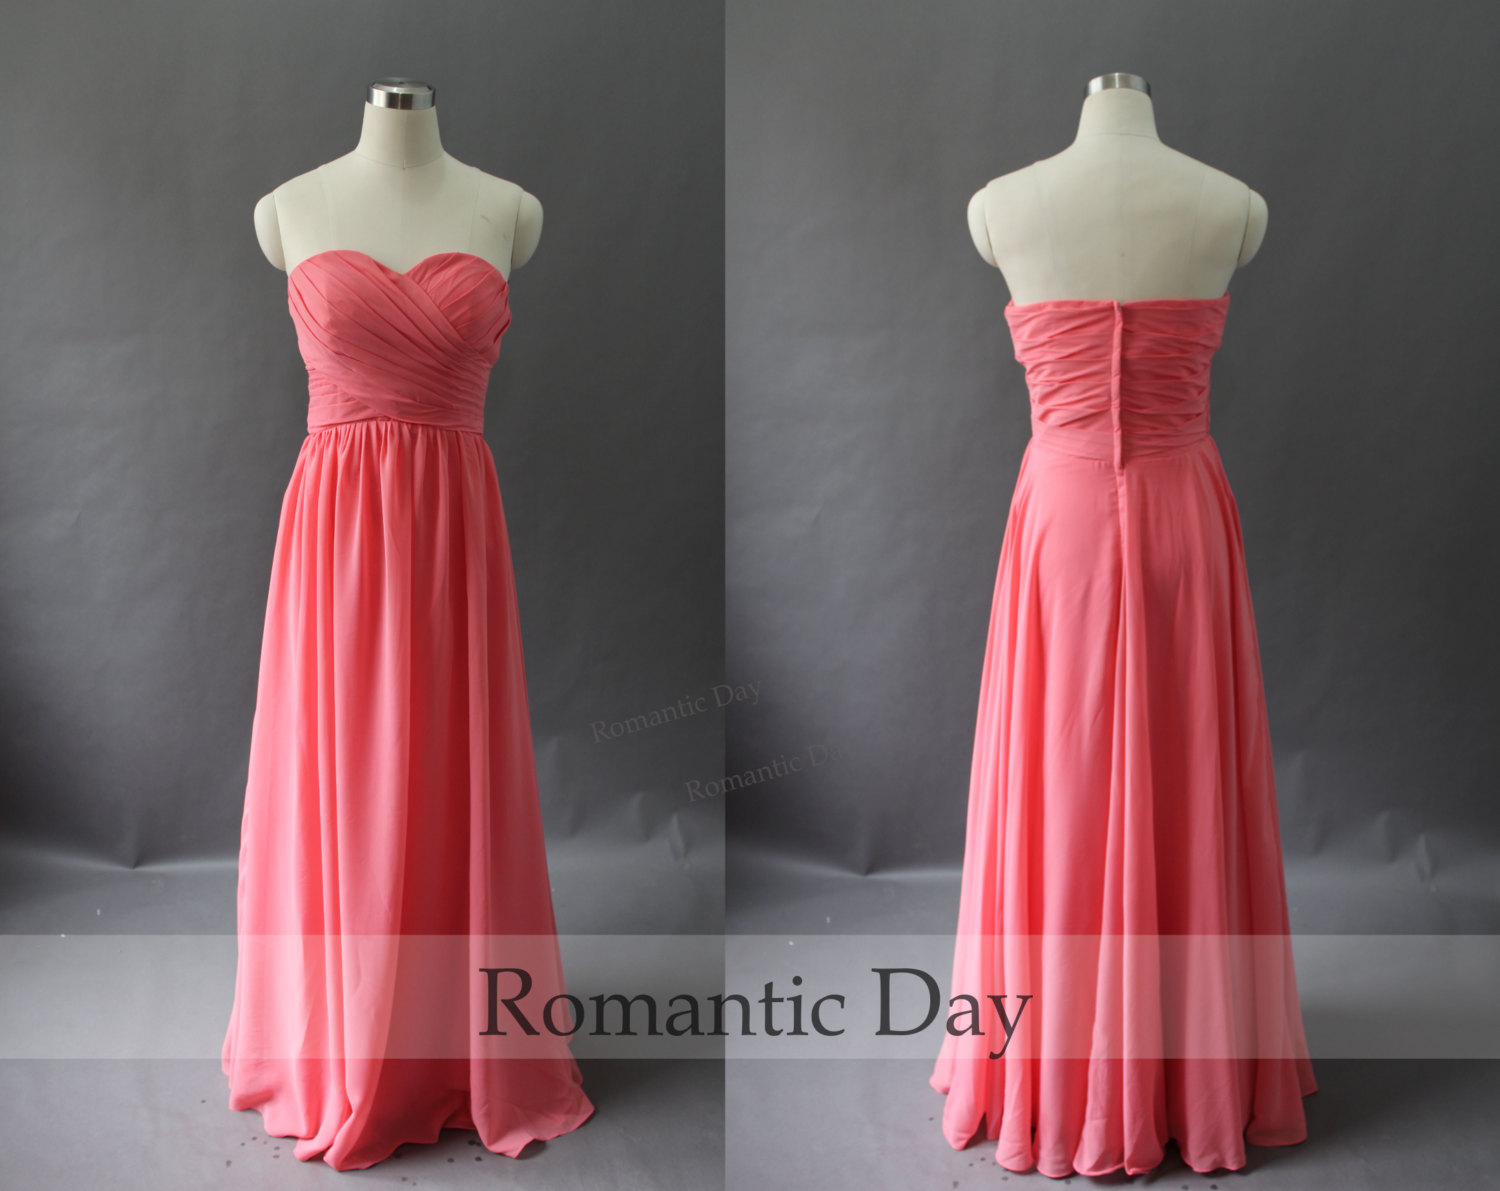 2015 Sweetheart A-Line Long Chiffon Mint Green/Coral Bridesmaid  Dresses/Long Prom Dress/Summer Beach Dress/Plus Size Maxi Dress 0054 sold  by Romantic ...